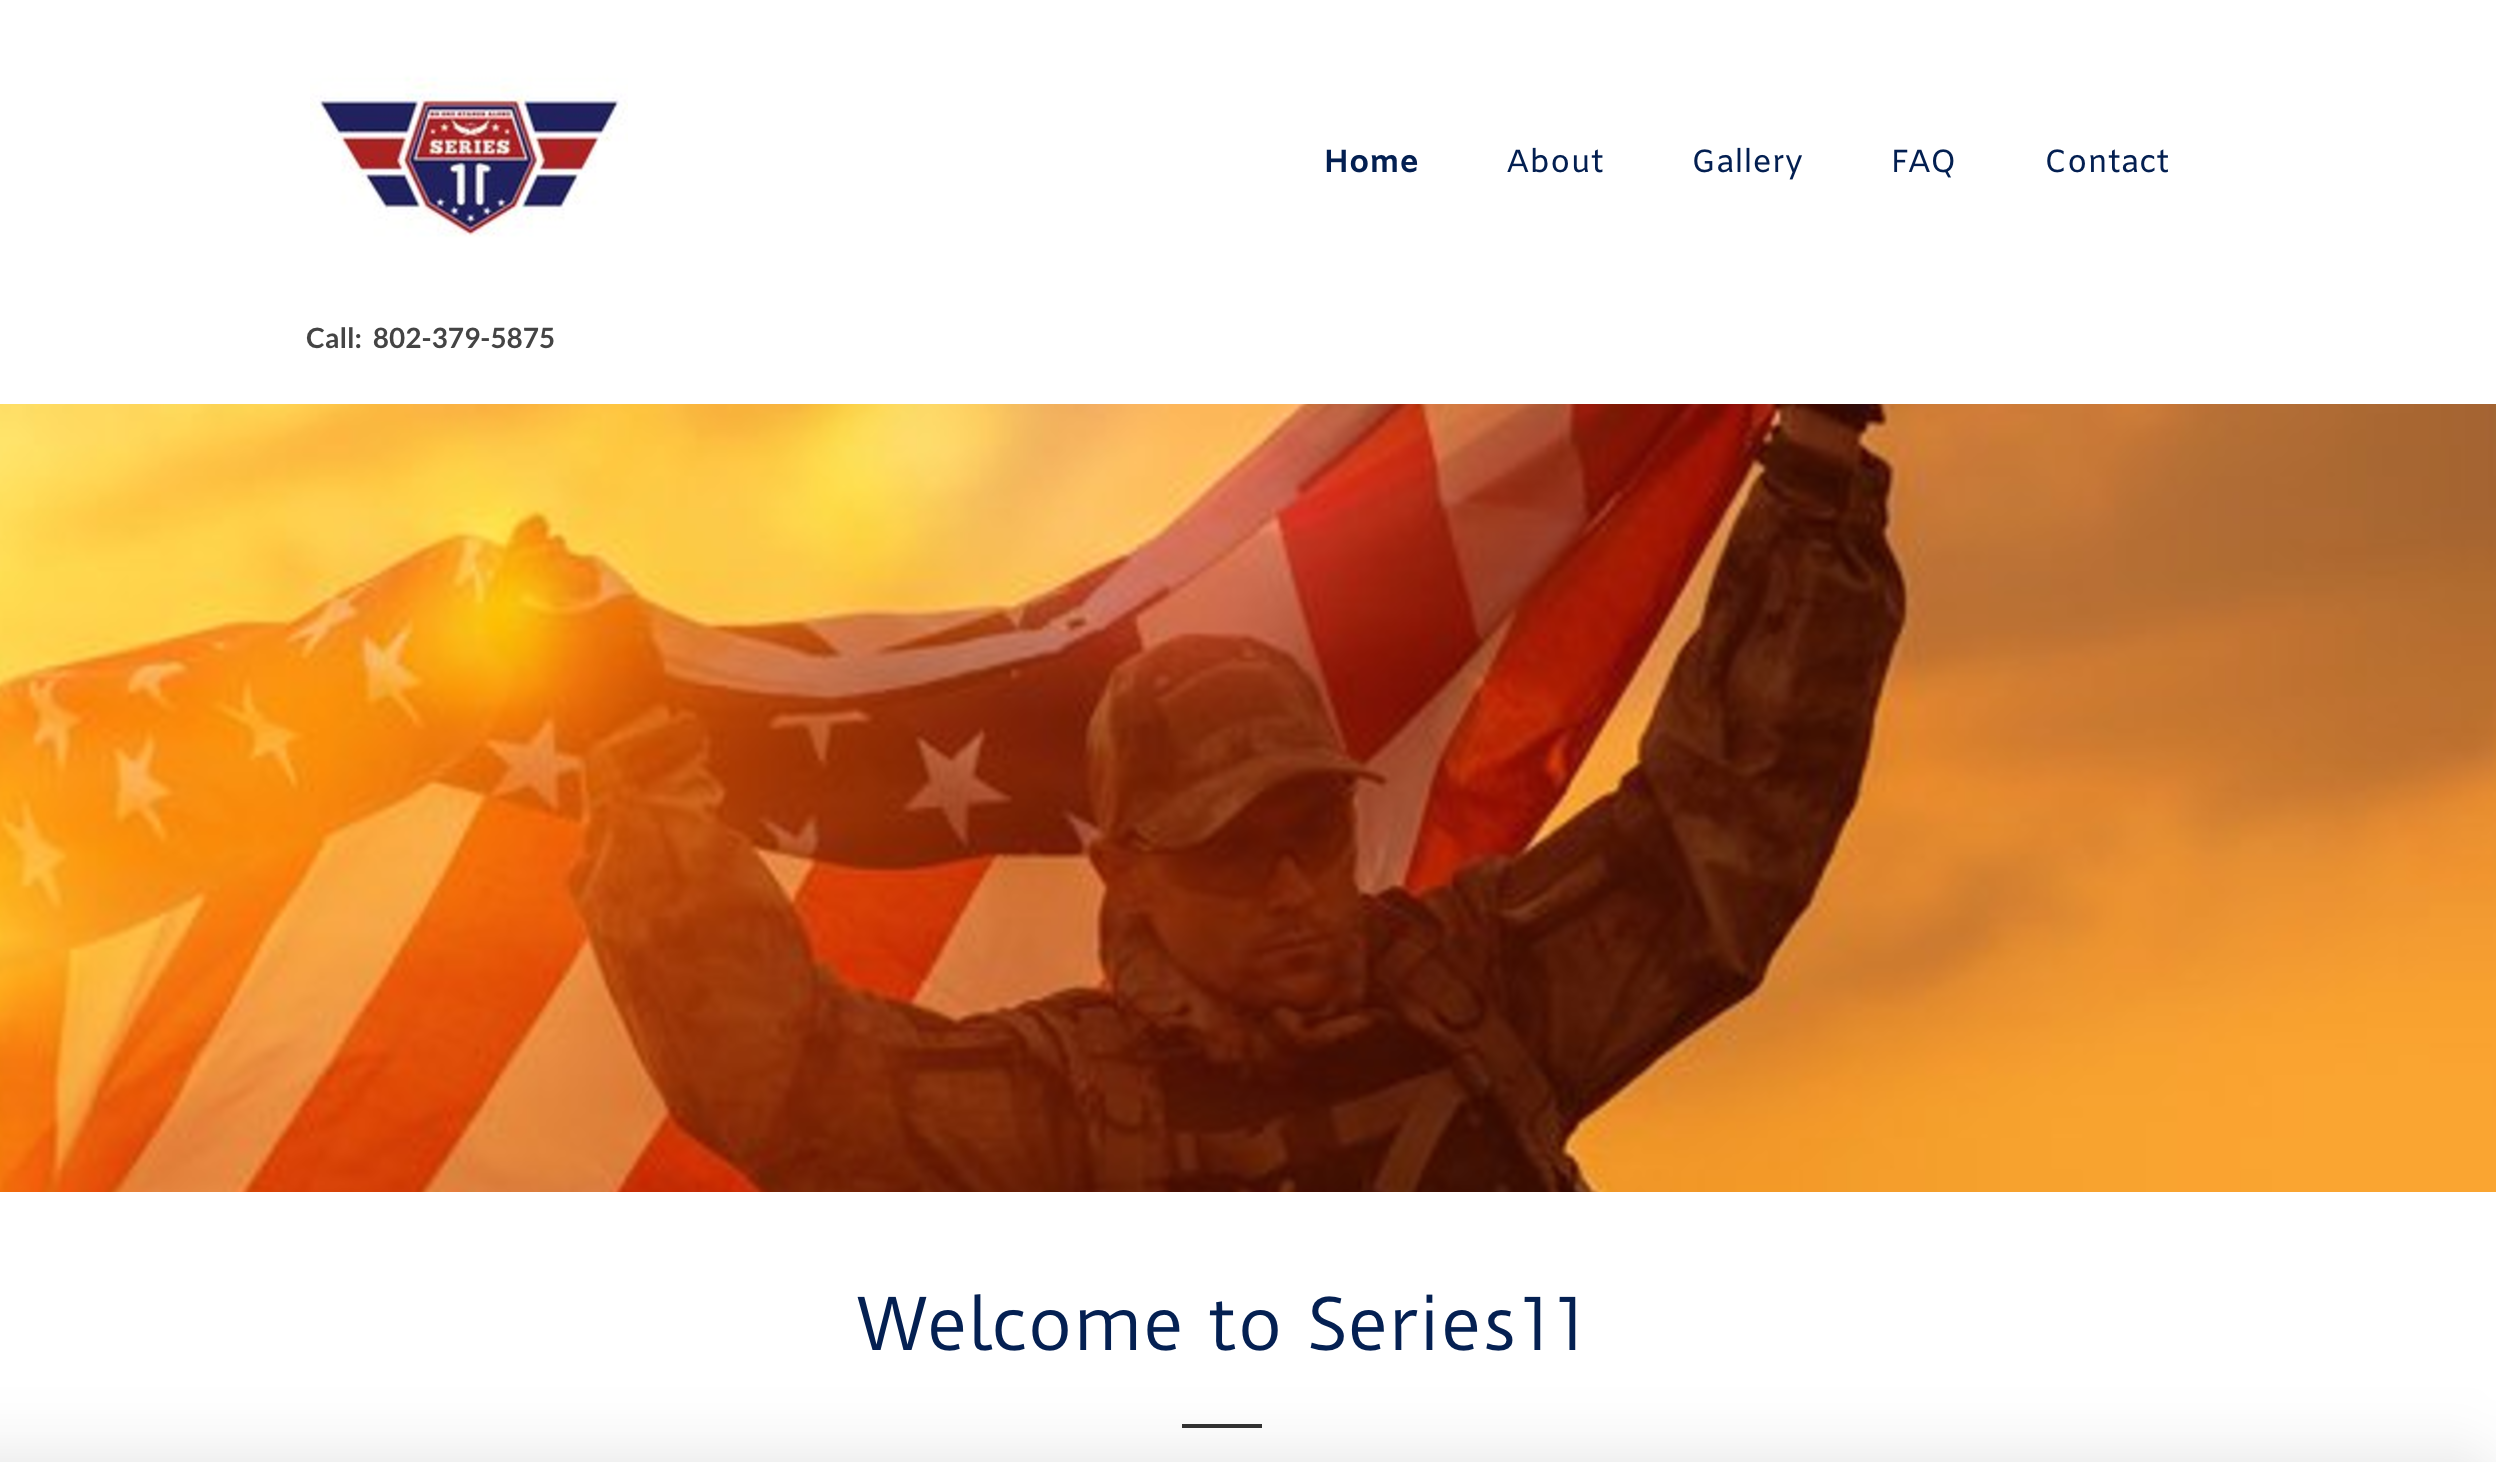 Series11 - Series 11 is a veteran owned and operated small business. We have served our country and we are now committed and dedicated to serving you.Target Training . Survival Tactics . Endurance Training . Sharp ShootingHunting & Safety